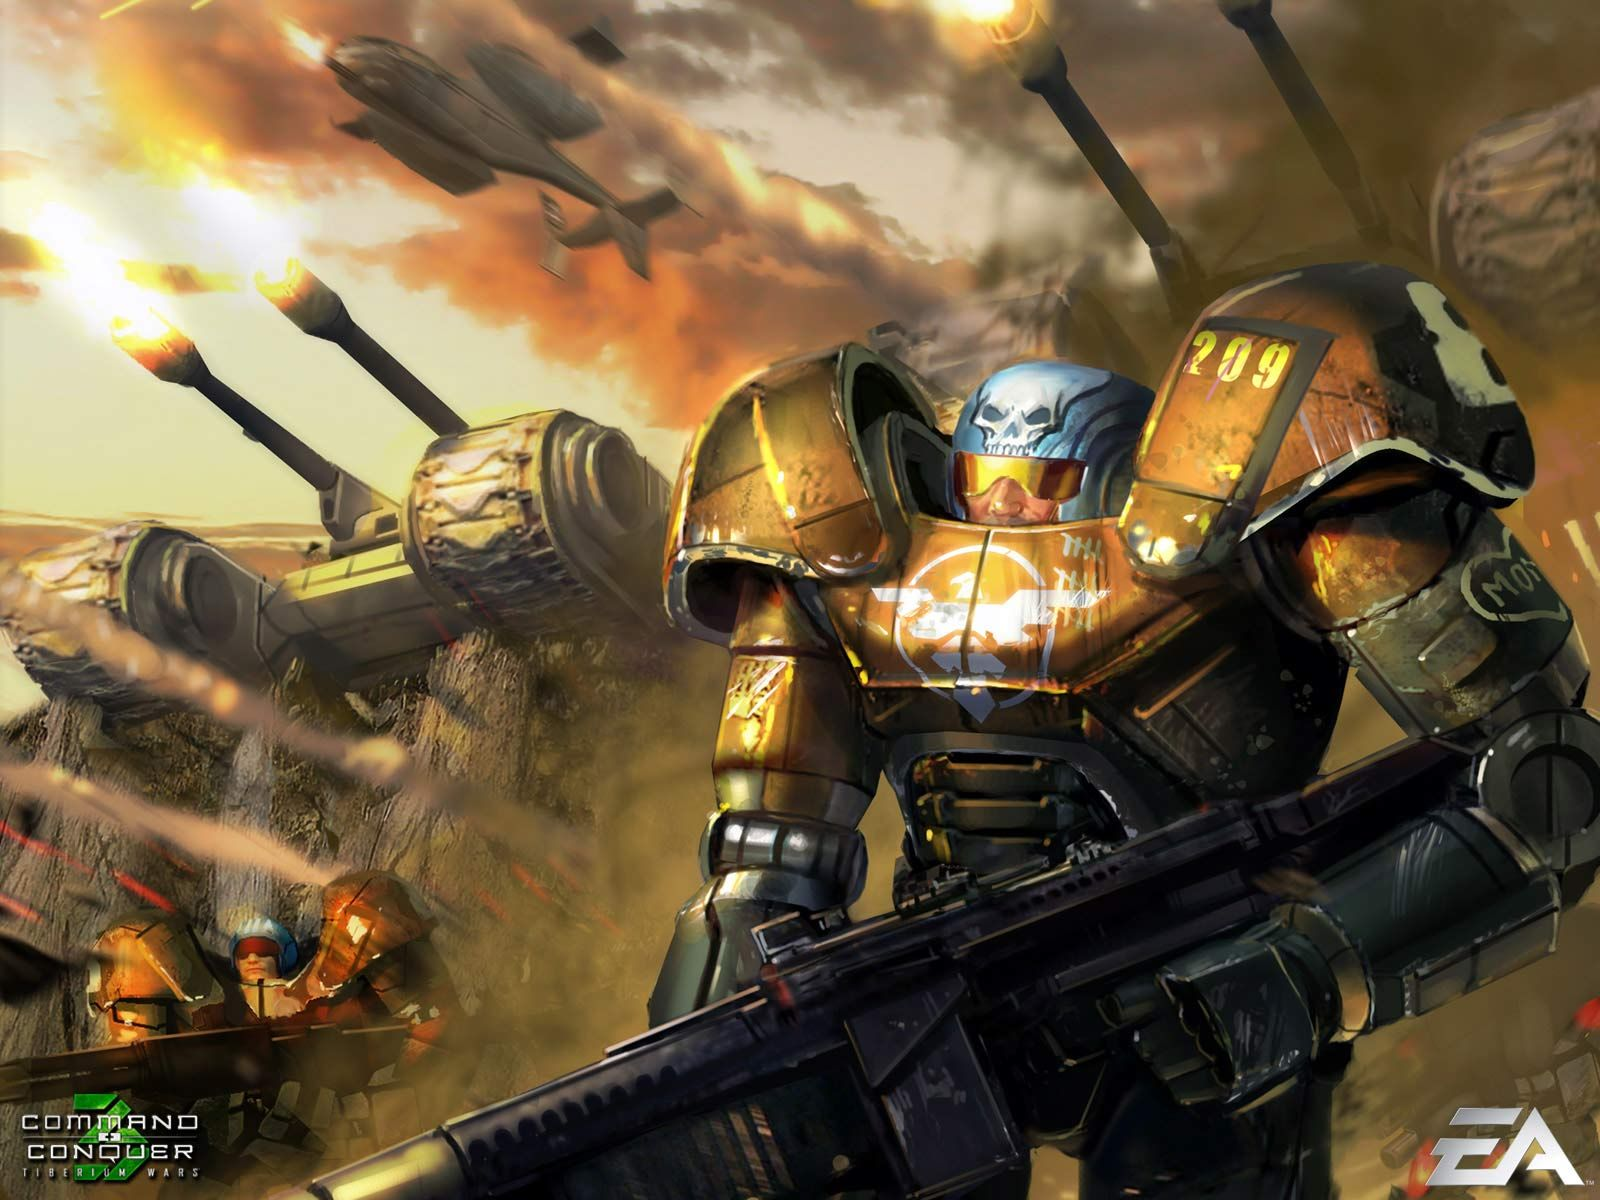 Desktop Wallpaper Gallery Games Command And Conquer 3 Free Background 1600x1200 Topeng